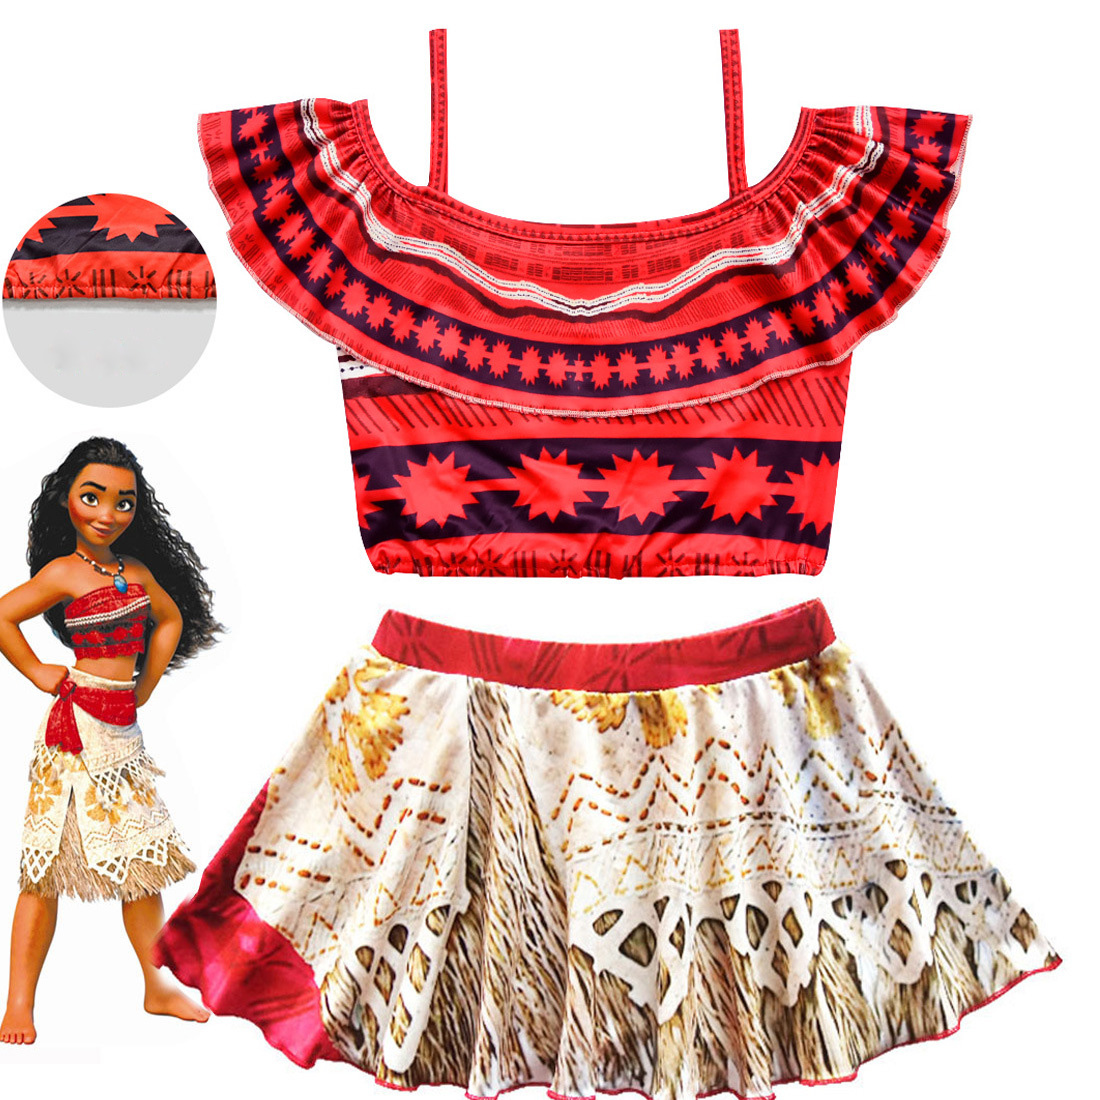 2018 New Moana Girls Dress Summer Kids Swim Clothing Cartoon Beach Dress Cosplay Children Swimsuit Bikini Adventure Outfit ...